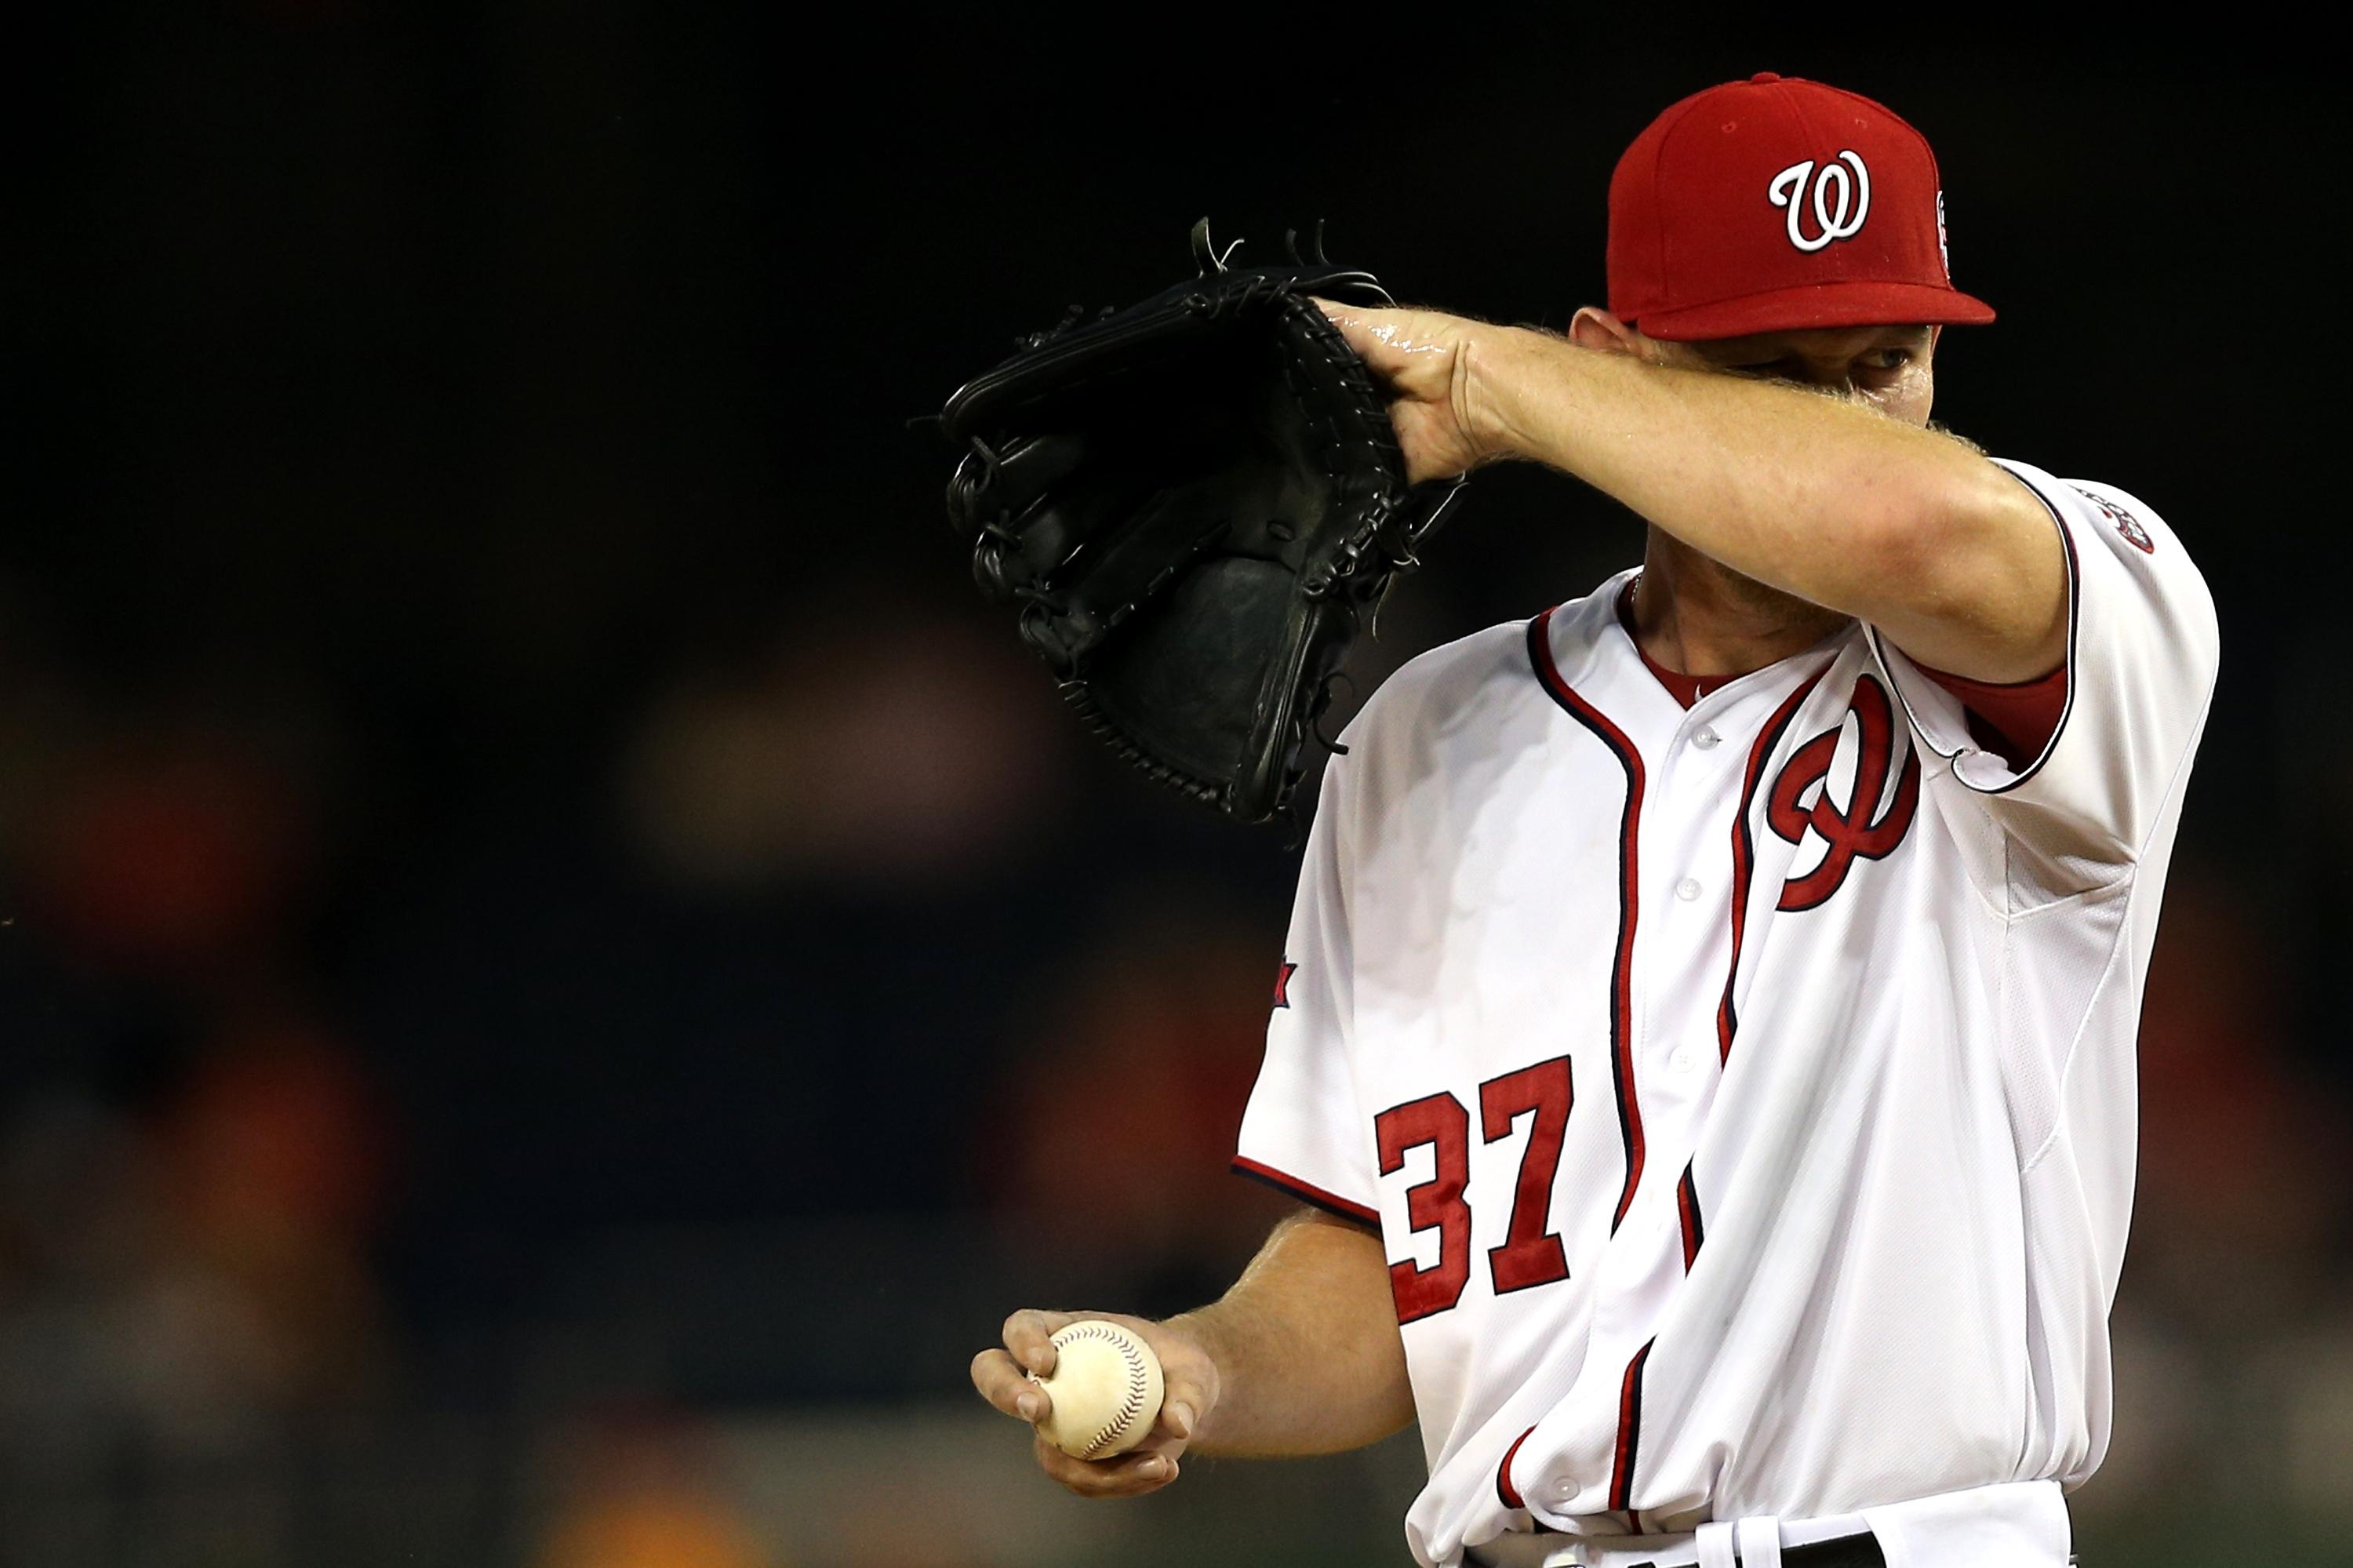 Off to slow start in 2015, Nationals now lose Strasburg to injury